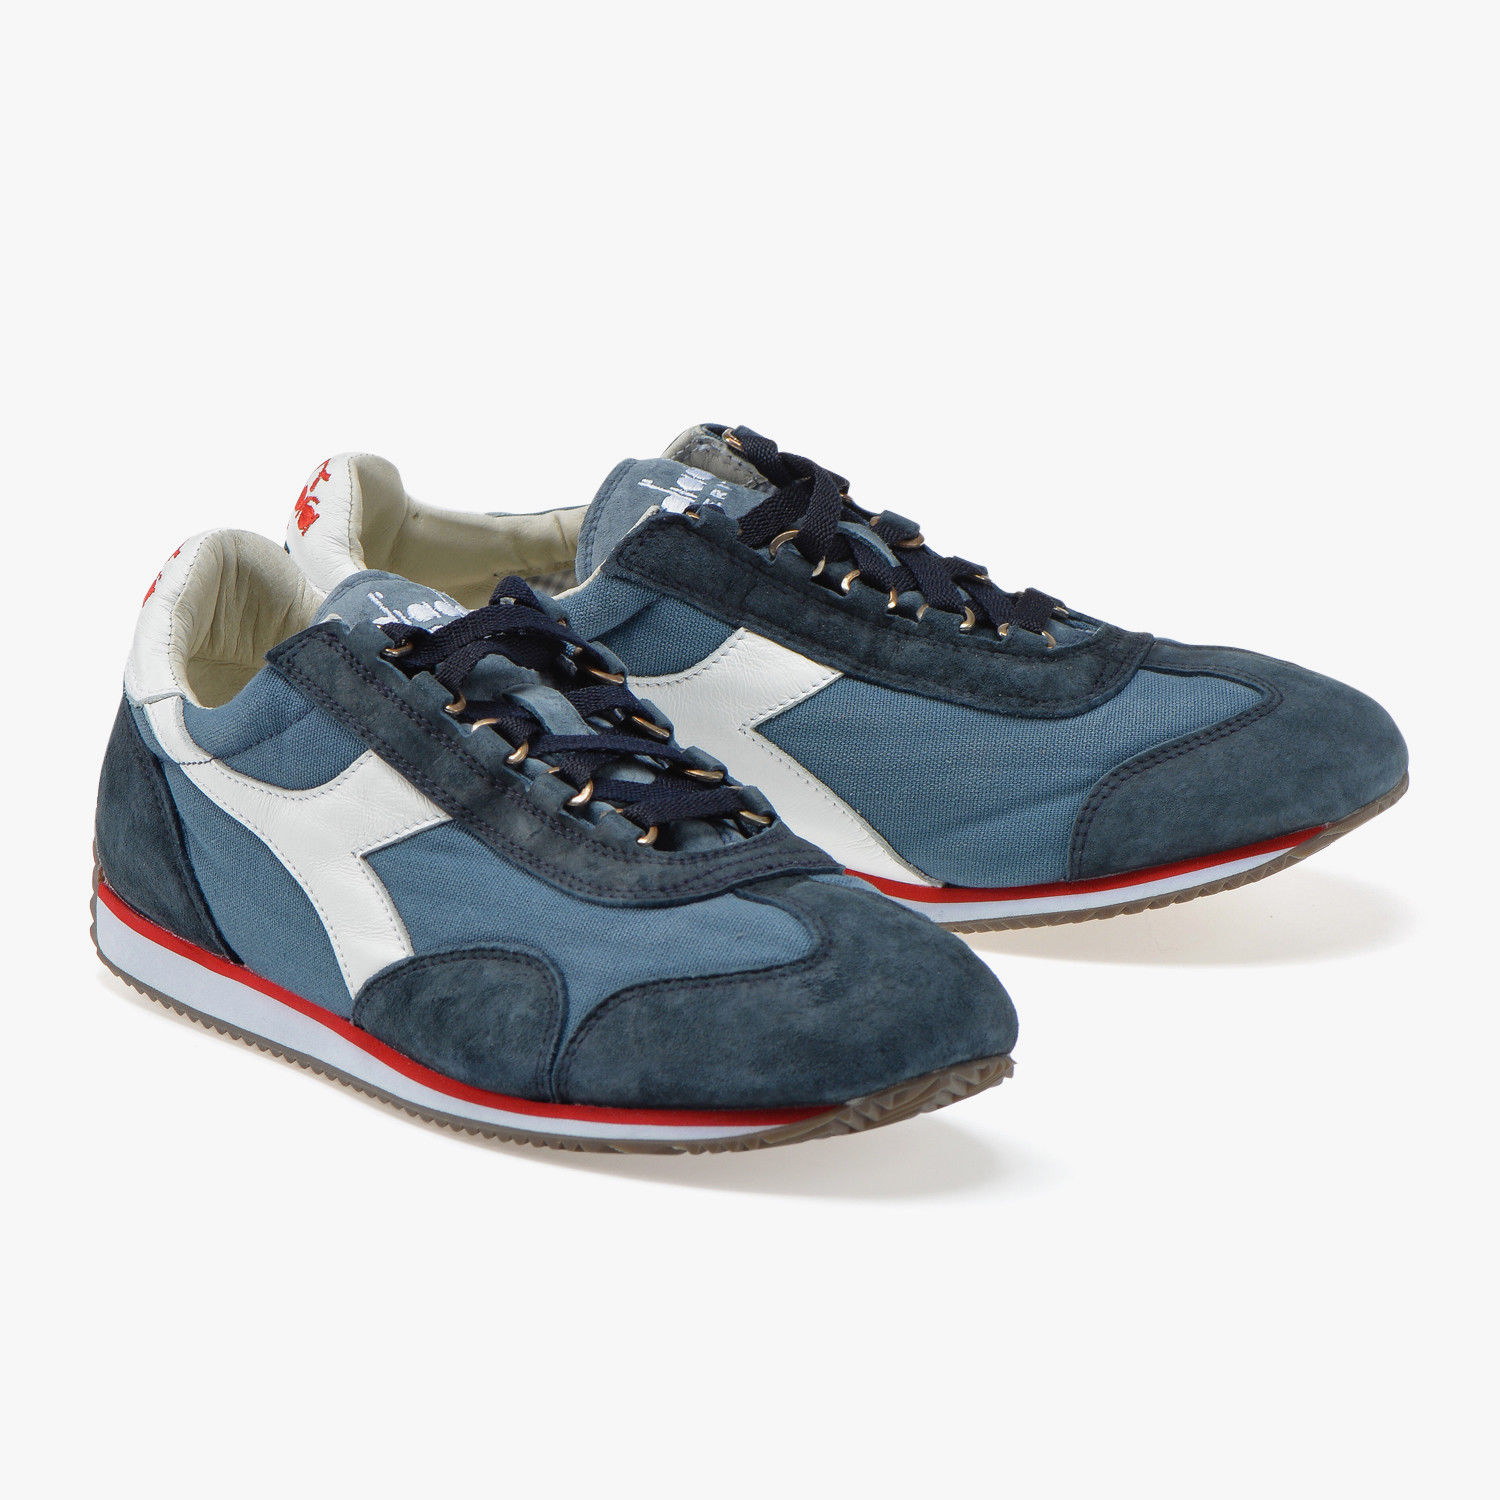 hot sale online dab3d 52d22 Sneakers scarpe DIADORA HERITAGE Equipe Stone Wash 12 China Blue/Blue Denim  2018